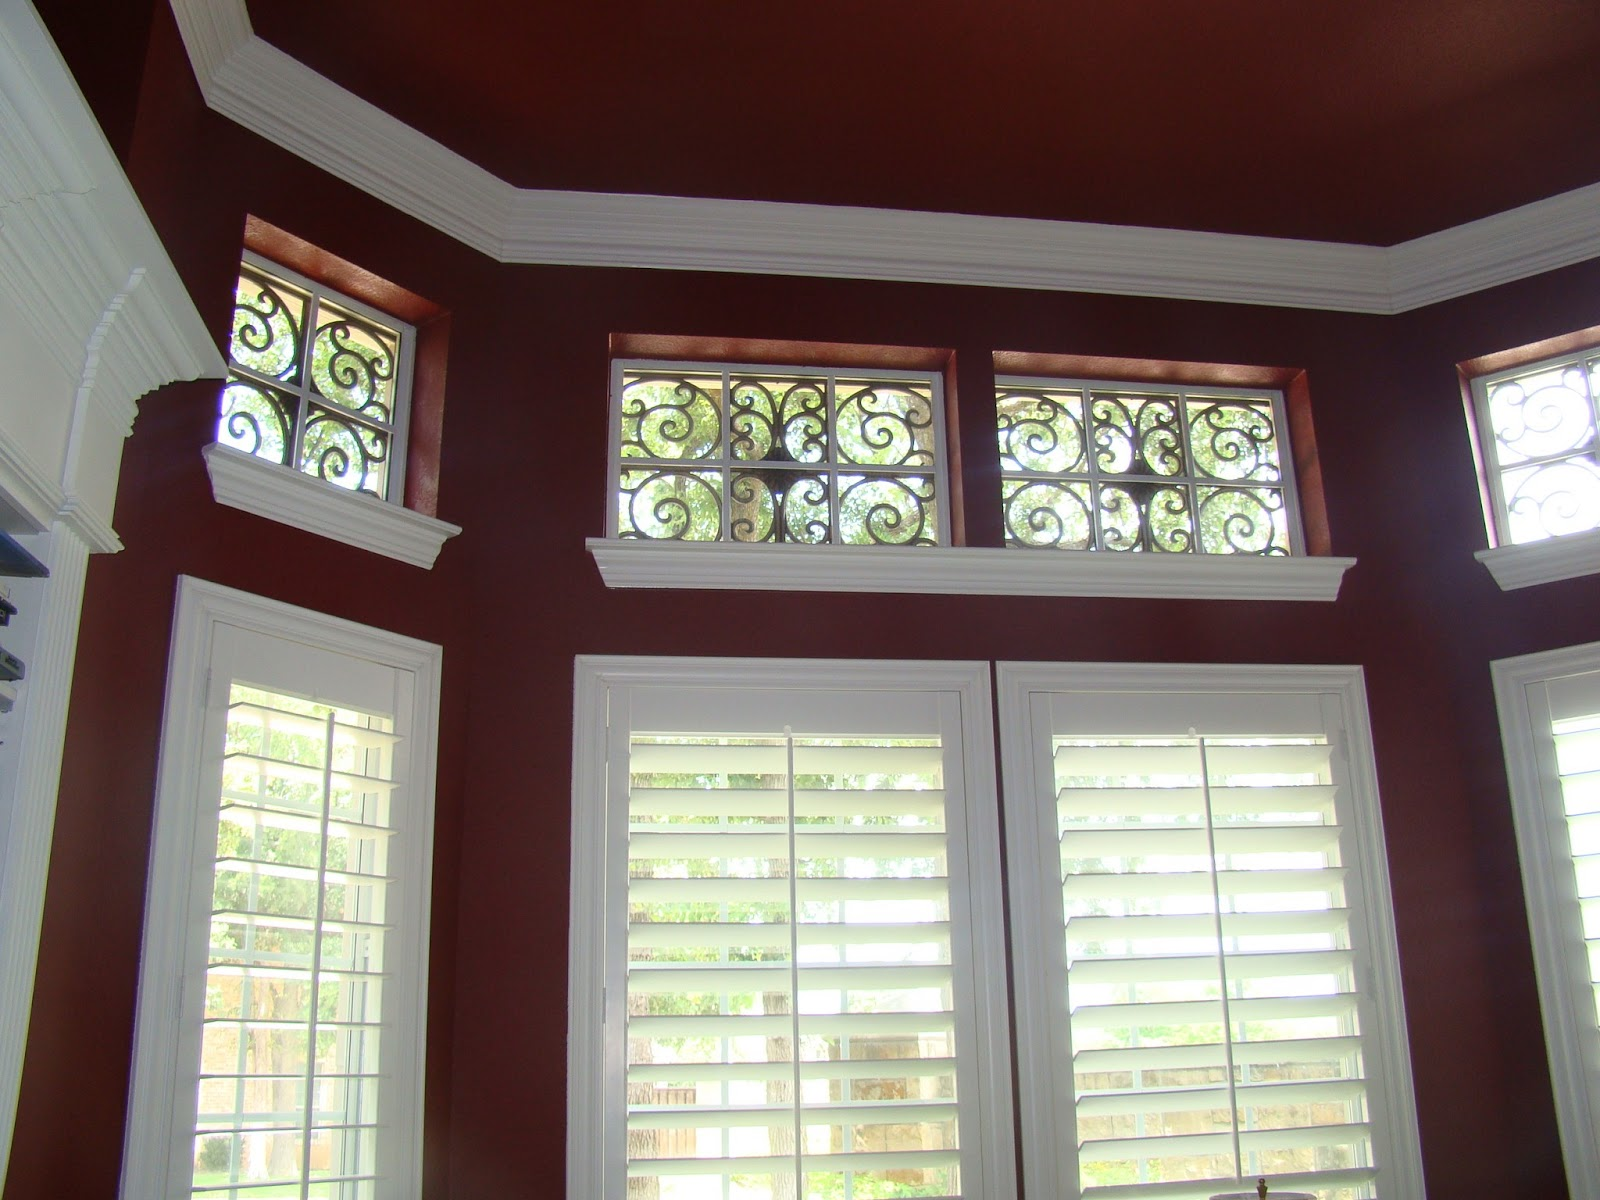 Stunning Check out one of our newest installs in Southlake Texas We did shutters in a painted finish for the formal living and dining and stained shutters